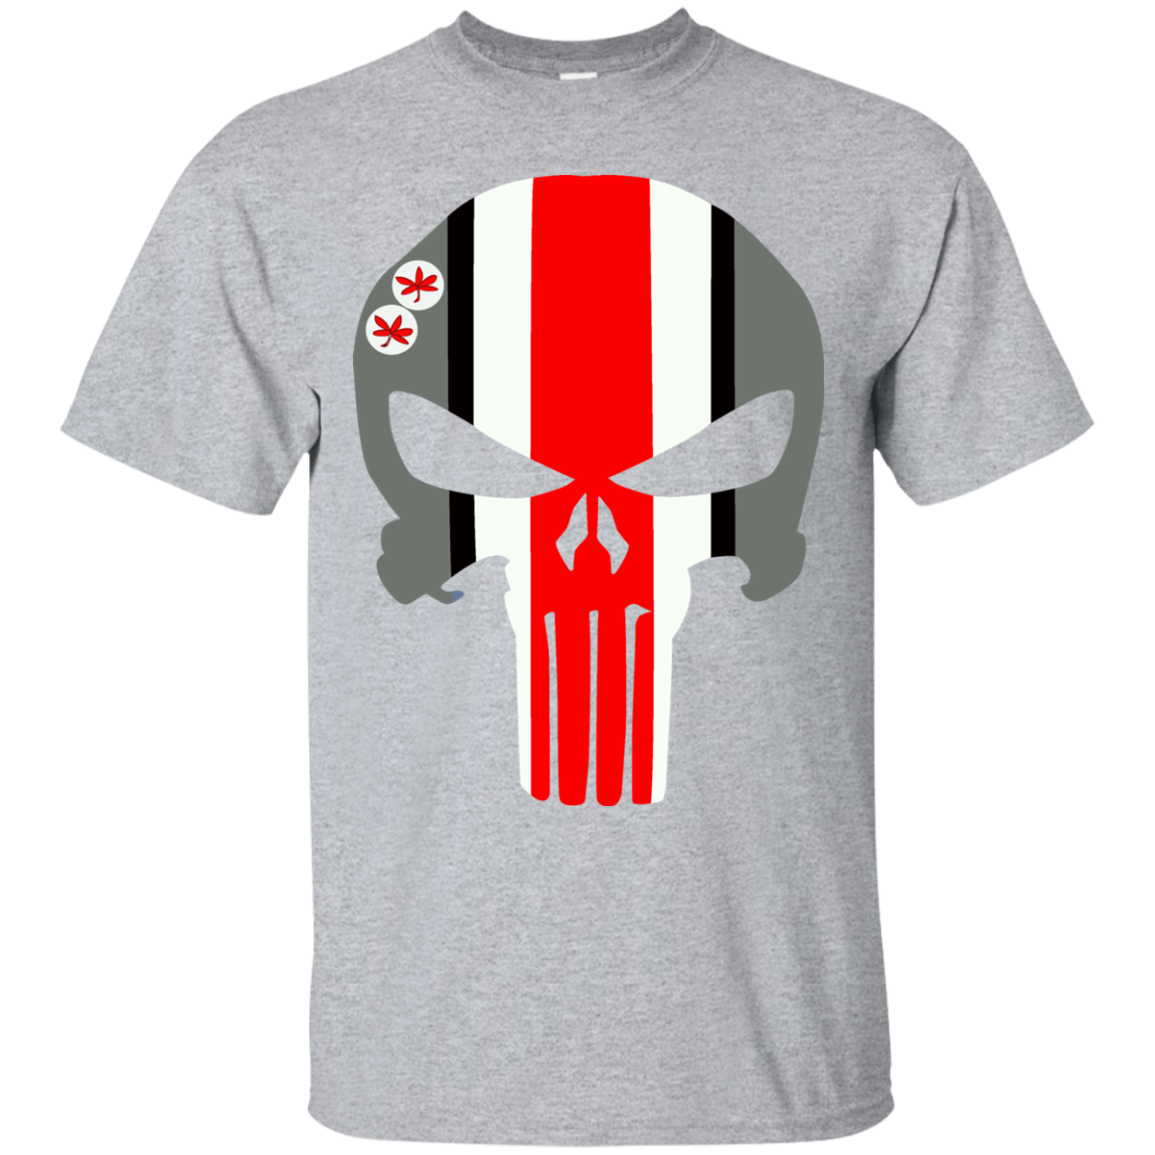 81b61f9e6 Punisher Style Fan Shirt Inspired By Thee Ohio State Buckeyes – Notorious  Gear- Shirts, Mugs, Bags, Pillow Cases and More